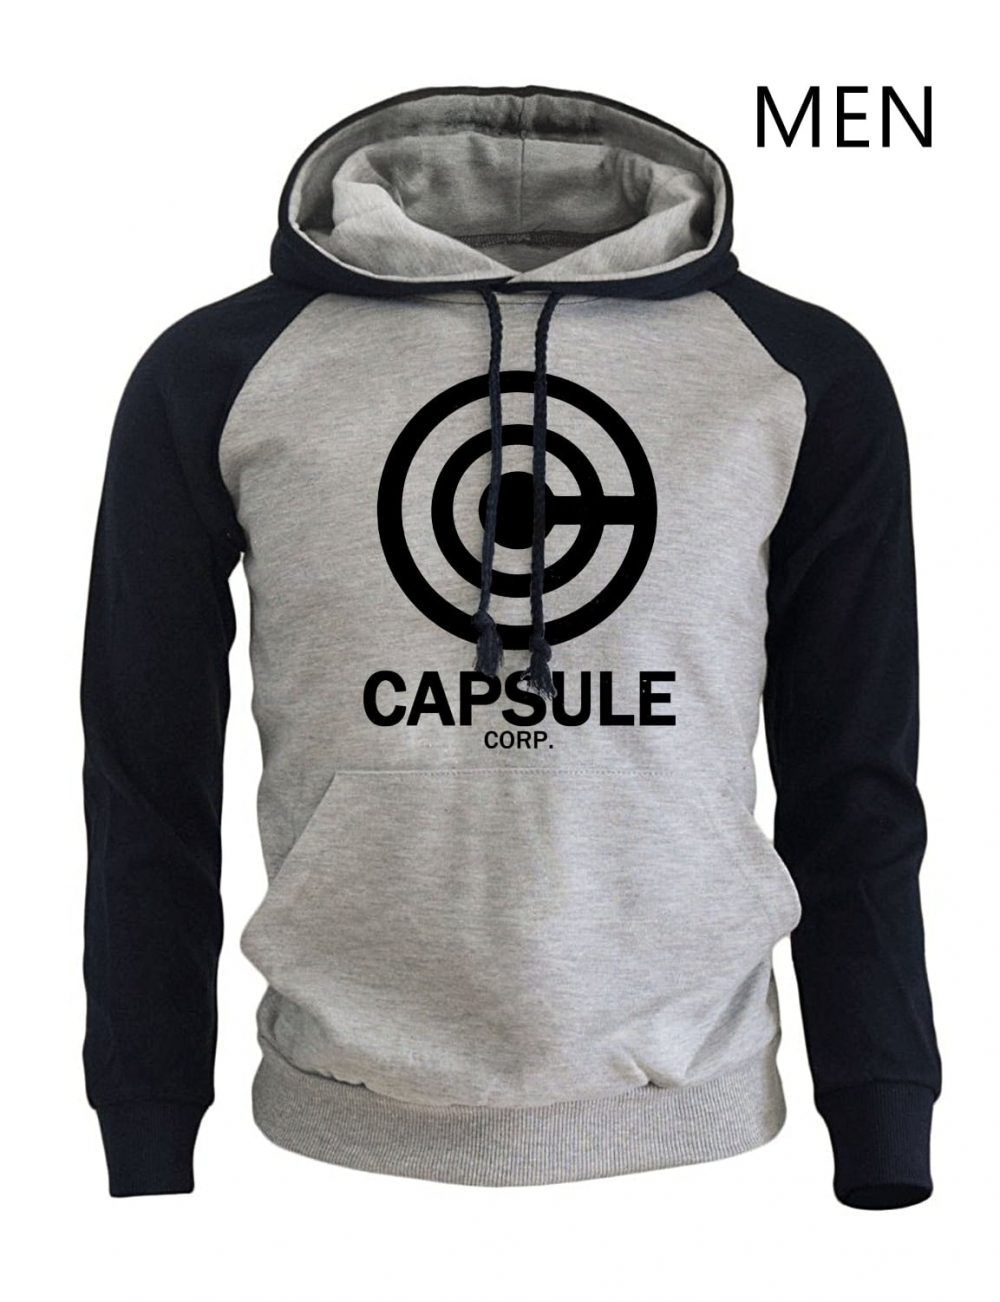 Dragon Ball Z Capsule Corp. Hoodie - dark blue gray1  Price: 23.00$ & FREE Shipping WORLDWIDE  #animegirl #AnimeArt #AnimeBoy #animedrawing #animes #animelover #animefan #animelove #animeworld #animegirls #animememe #animememes #animeedit #animecosplay #animedraw #animeartist #animeedits #animestyle #animekawaii #animelife #animecouple #animefacts #animefreak #animemanga #animefanart #animelovers #animeislife #animeguy #animeartshelp #animeaccount